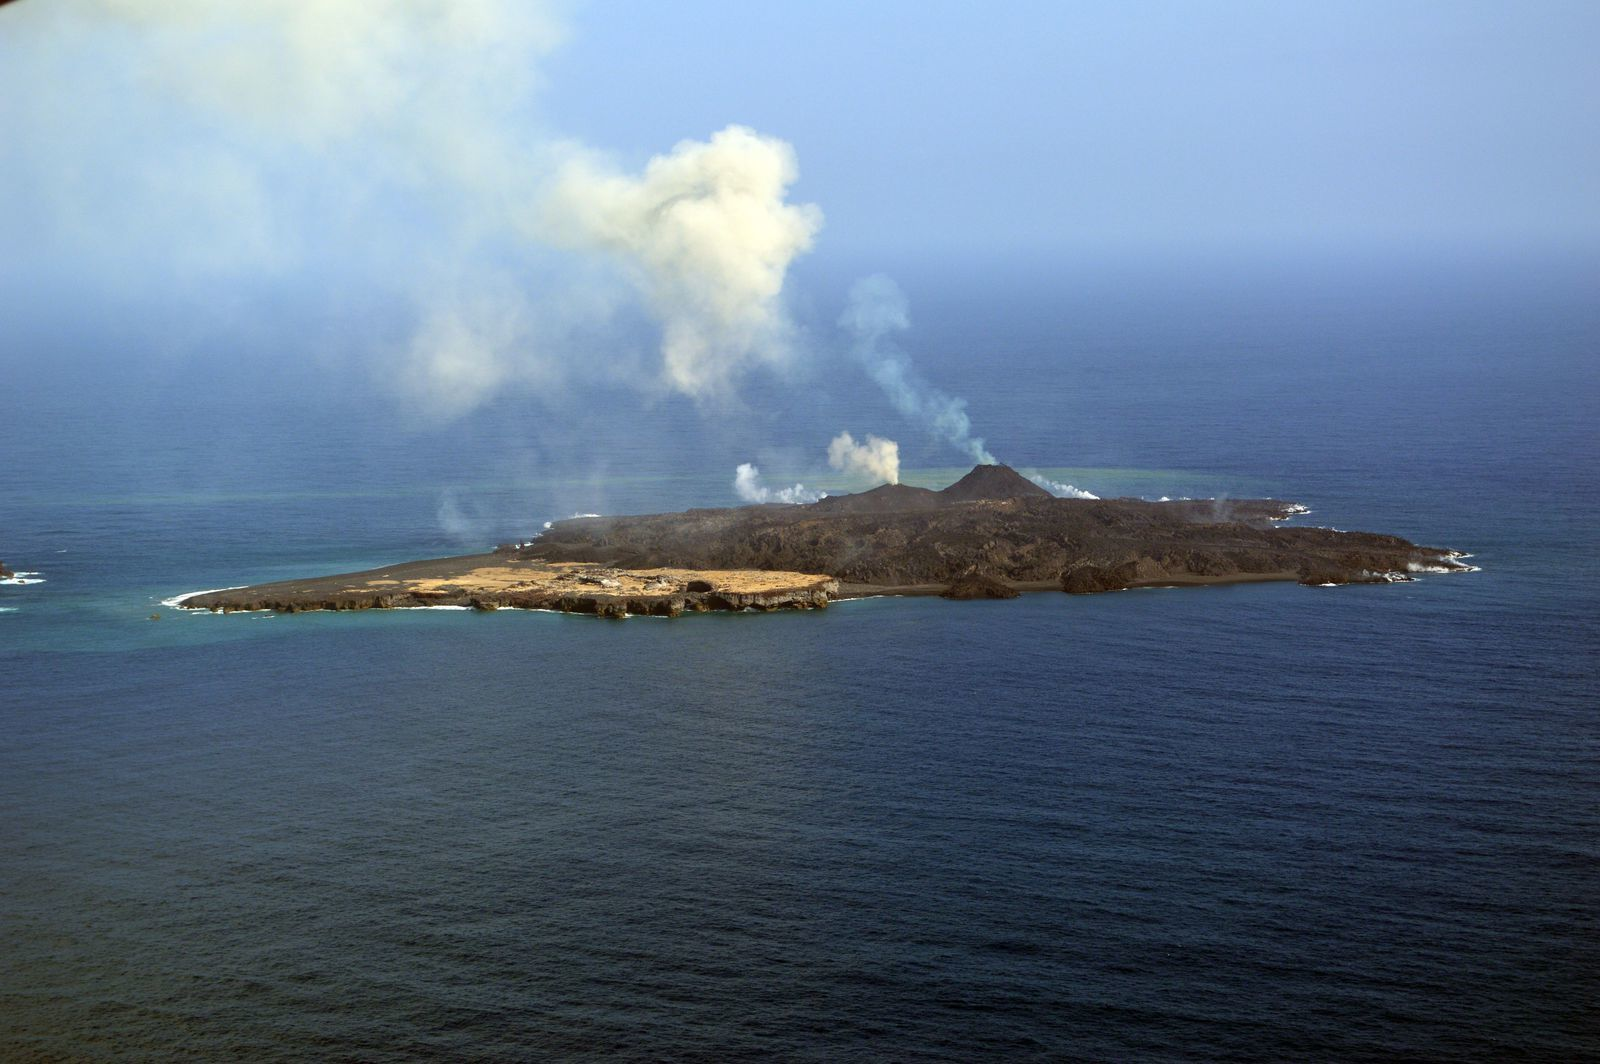 Nishino -shima 02/28/2014 - two cones are smoking / Degasing - Track the entry of lava flows into the ocean are visible on both sides - photo Japan Coast Guards